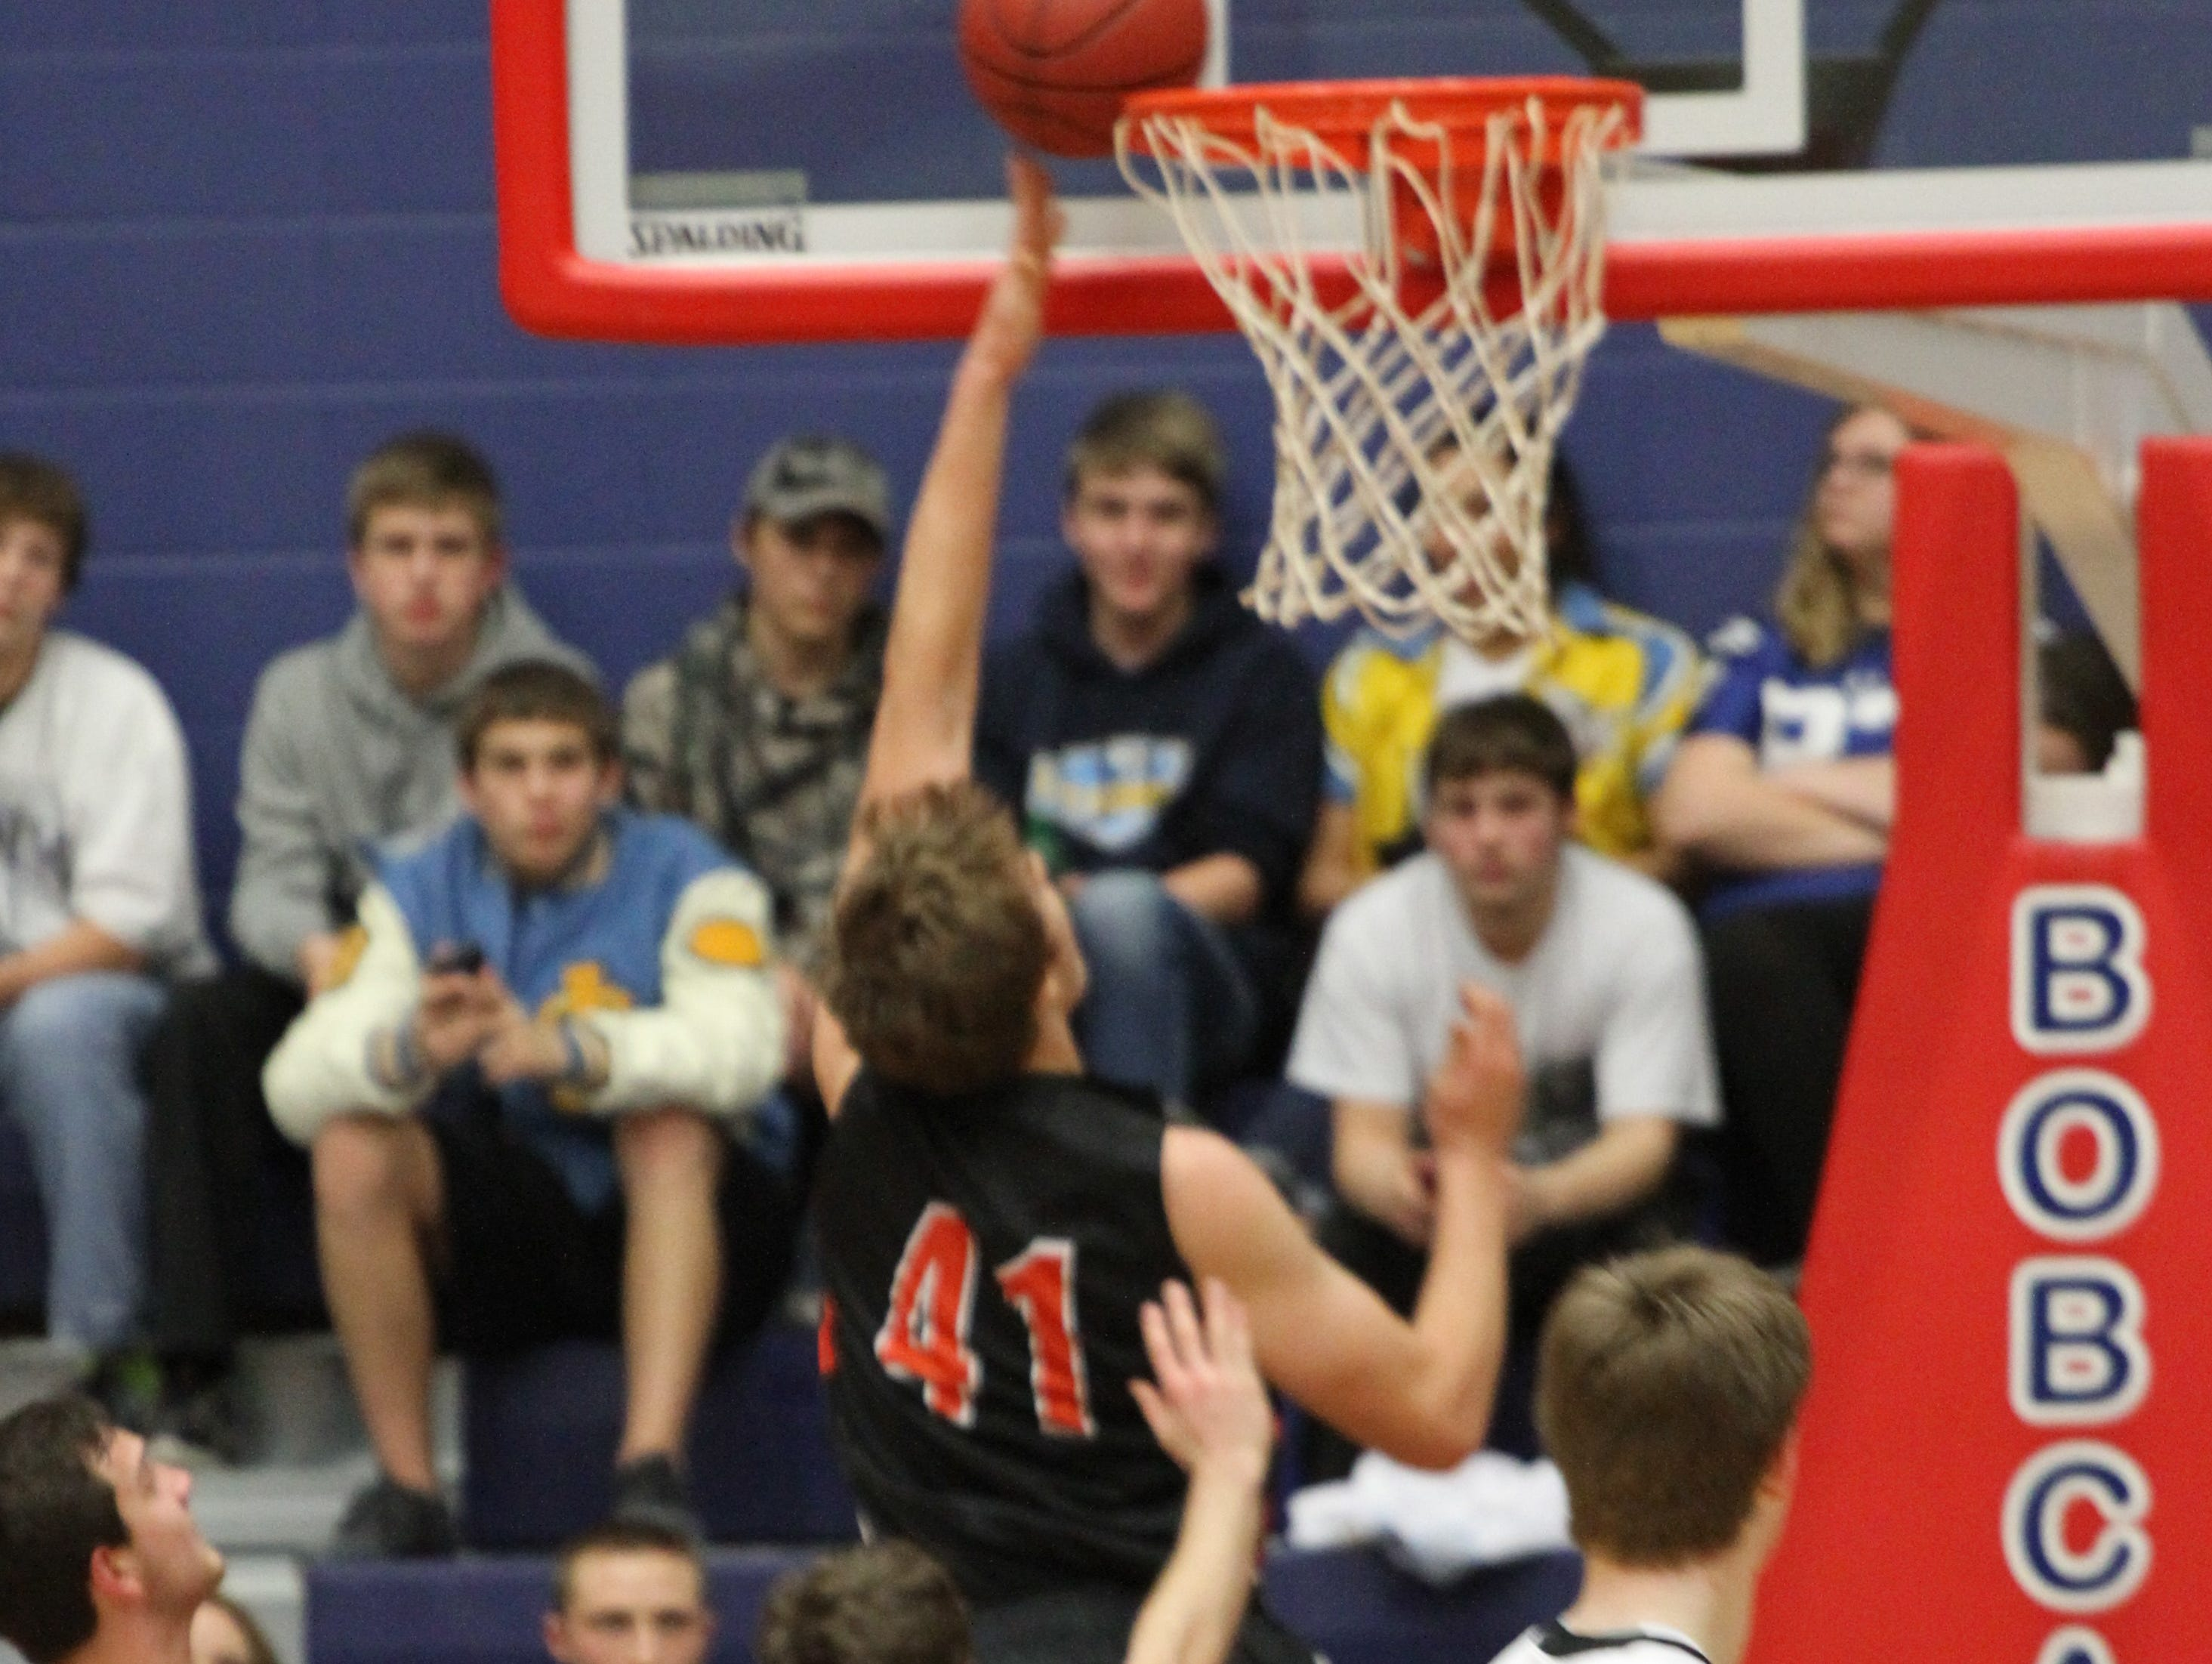 Grinnell's Cade McKnight, 41, hits two points during the Class 3A District 12 final won by Newton 62-49 at Marshalltown on Thursday, Feb. 25, 2016.